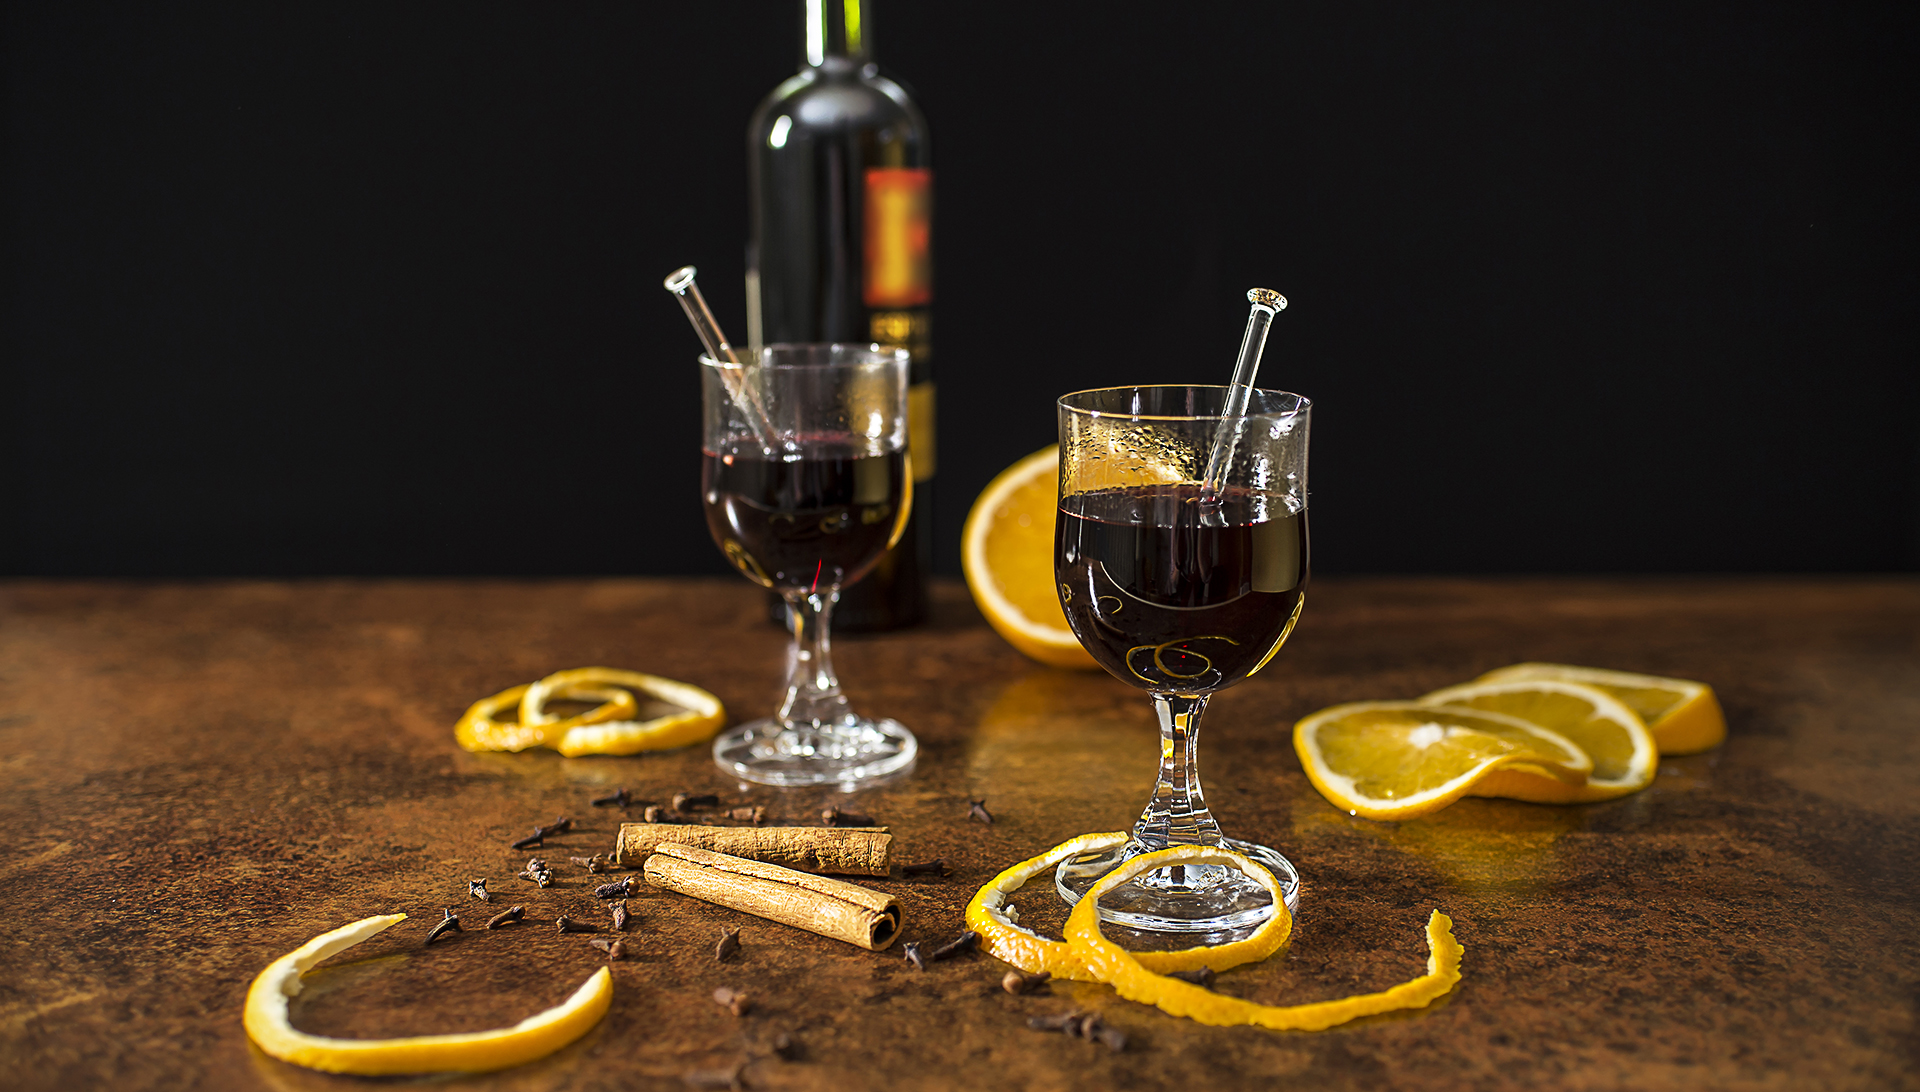 Mulled wine with spices and oranges close up in front of black background